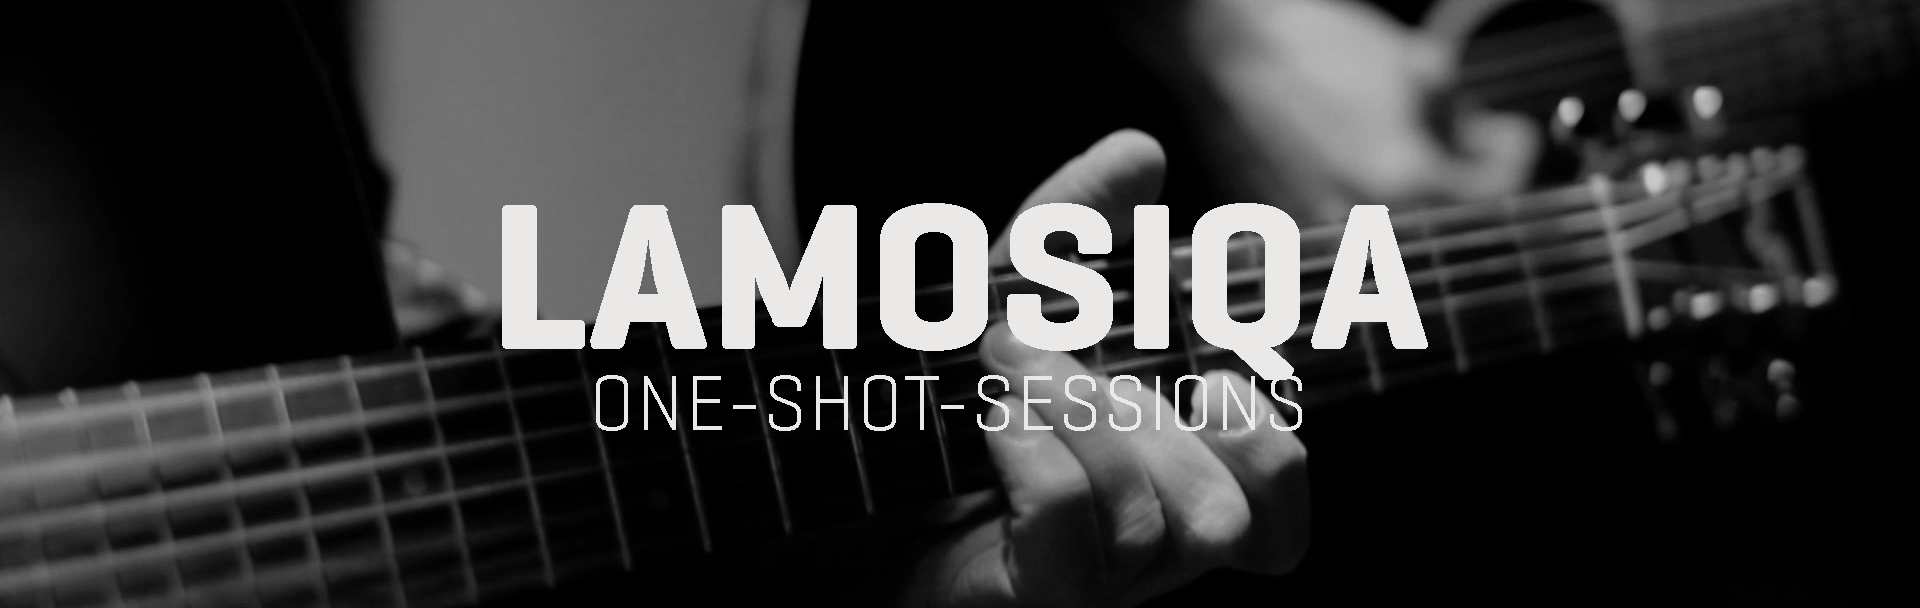 Lamosiqa one-shot-sessions